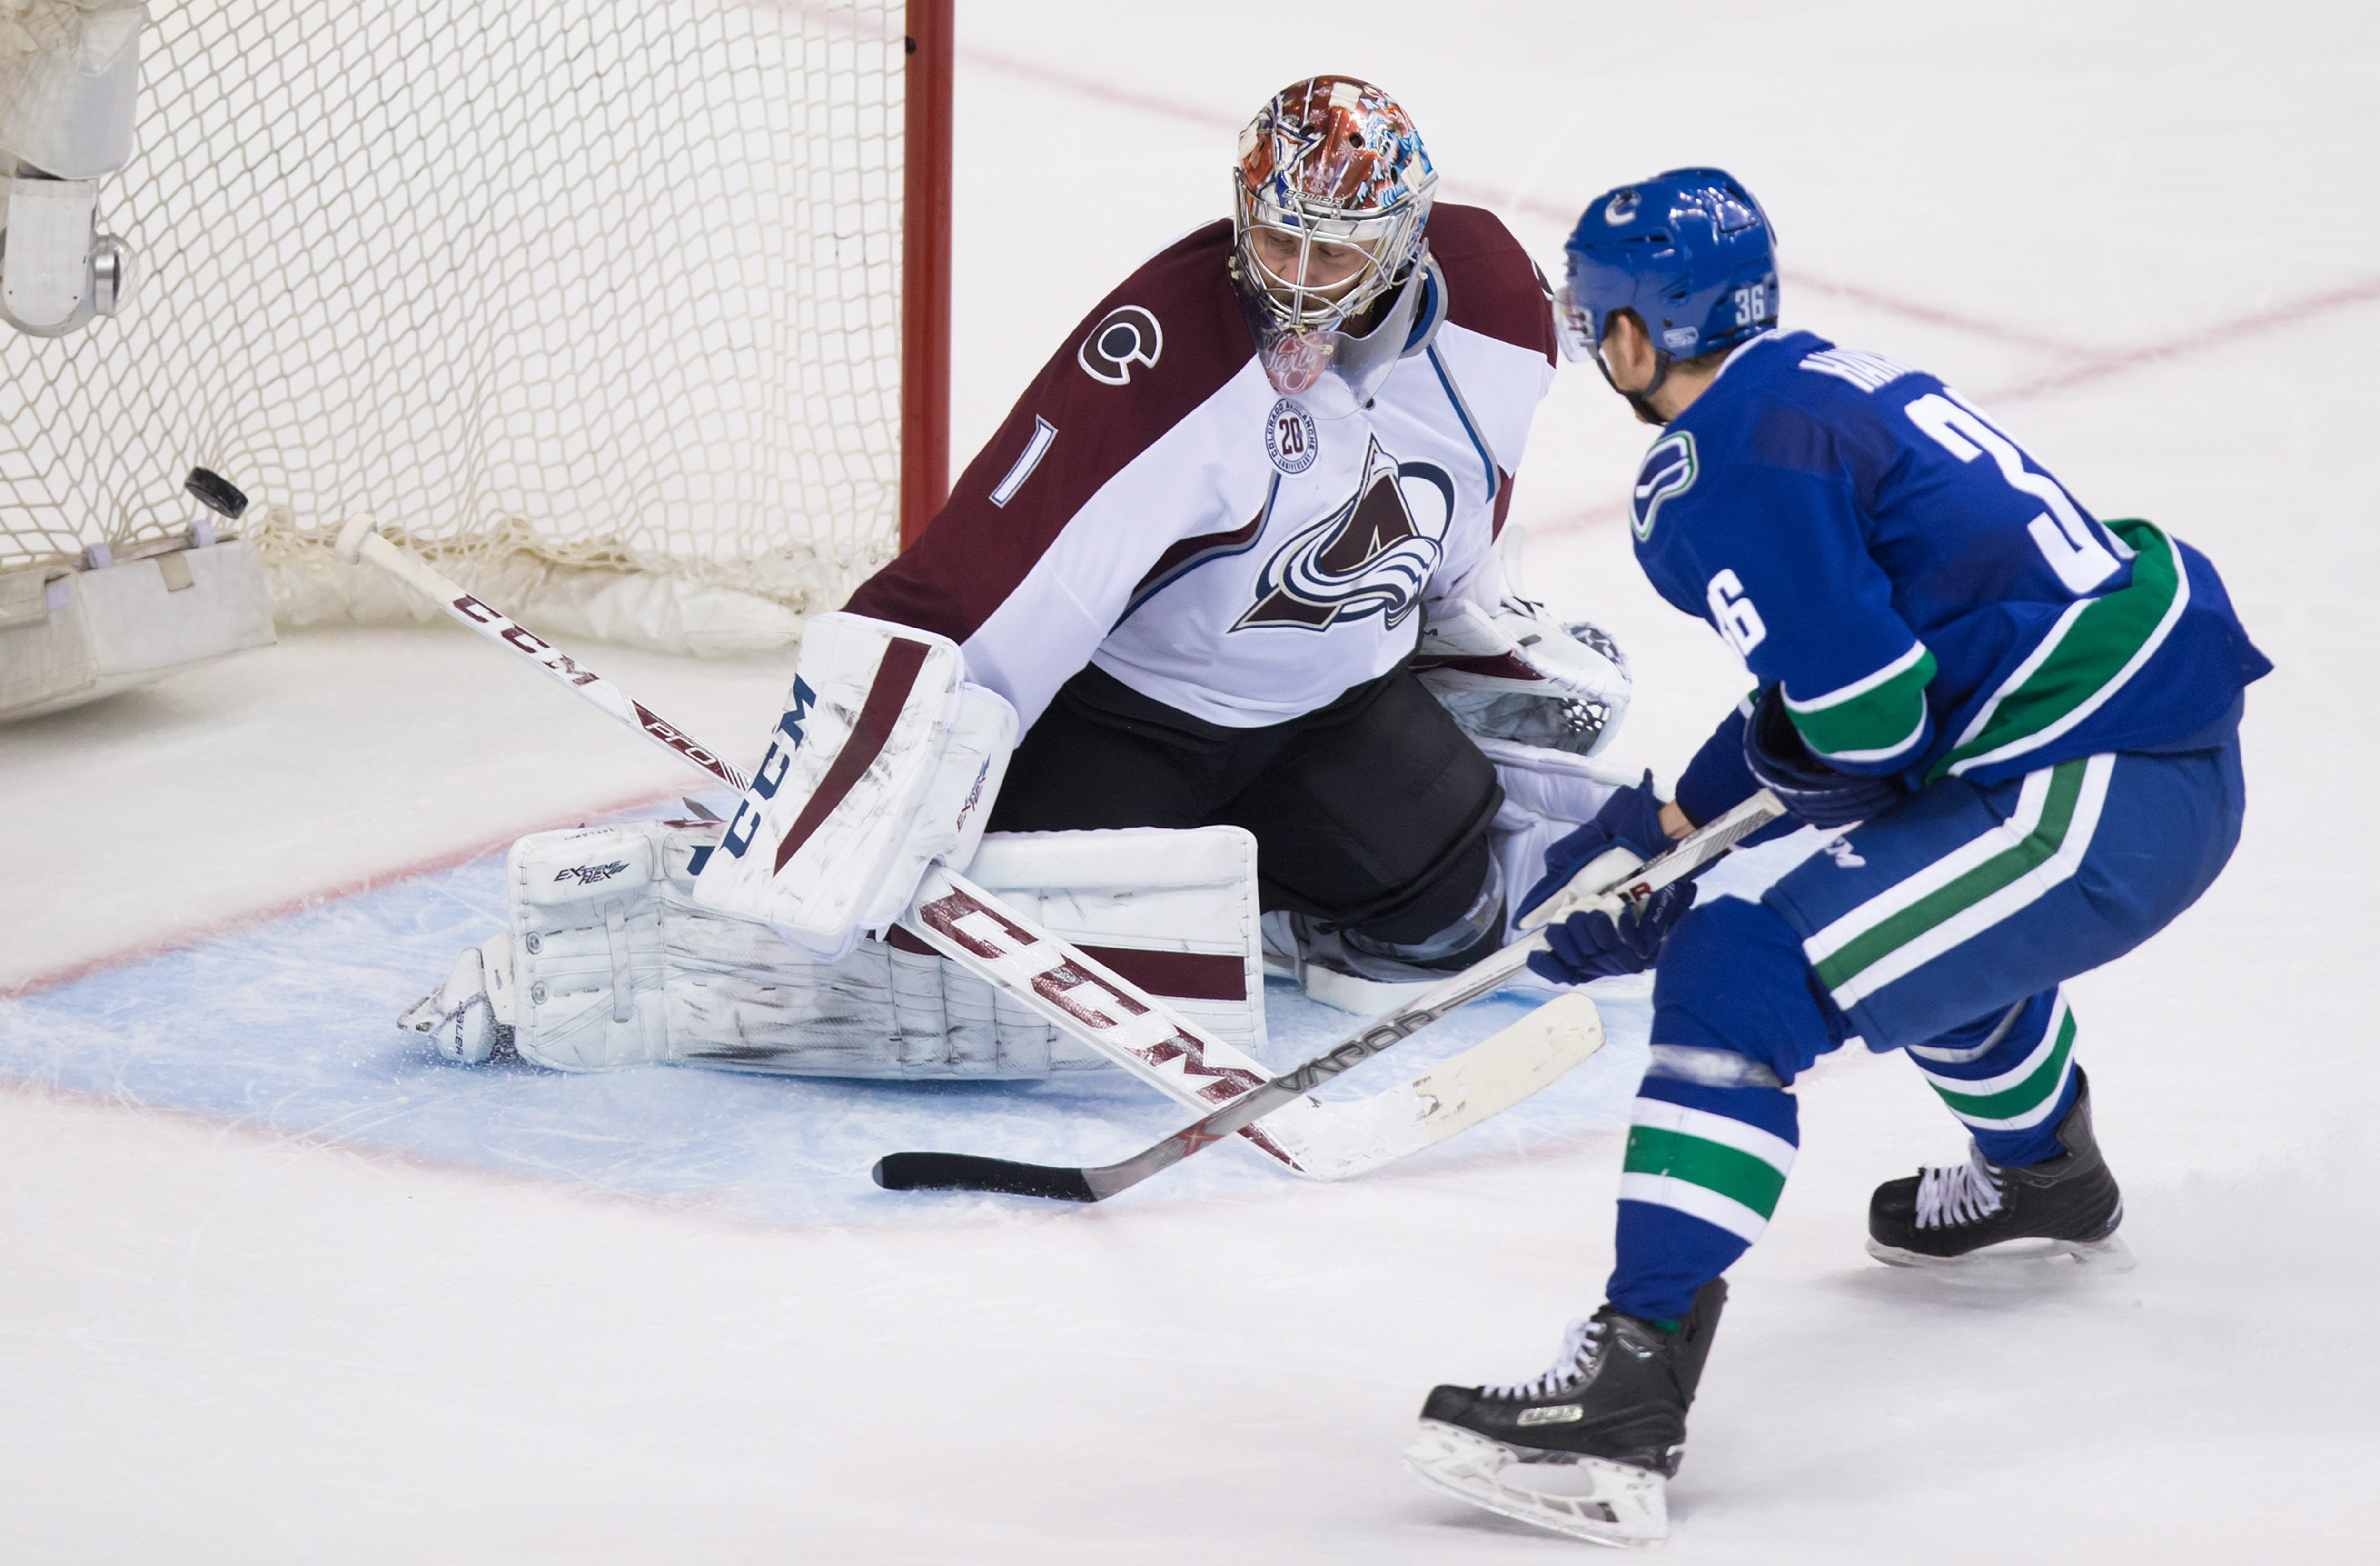 Vancouver Canucks' Jannik Hansen, right, of Denmark, scores against Colorado Avalanche goalie Semyon Varlamov, of Russia, during the third period of an NHL hockey game in Vancouver, British Columbia, Sunday, Feb. 21, 2016. (Darryl Dyck/The Canadian Press